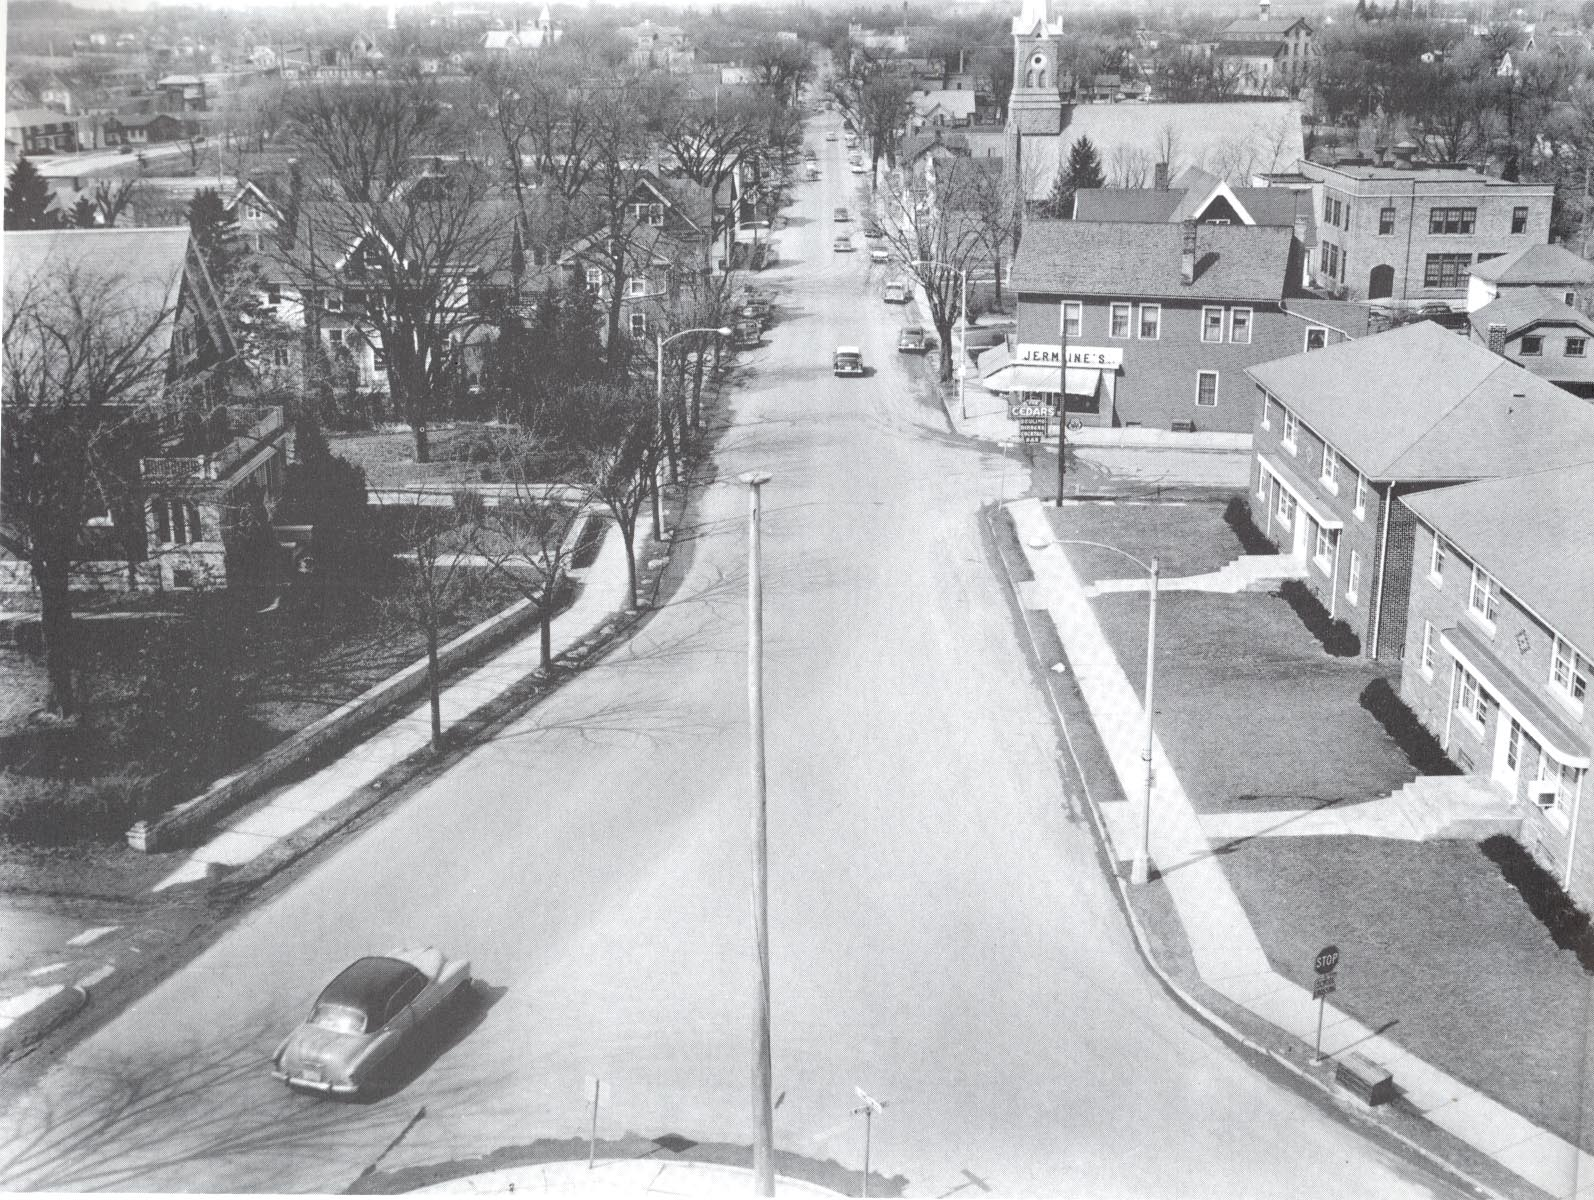 View from the steeple of St. Francis Borgia church looking north along Washington Avenue.